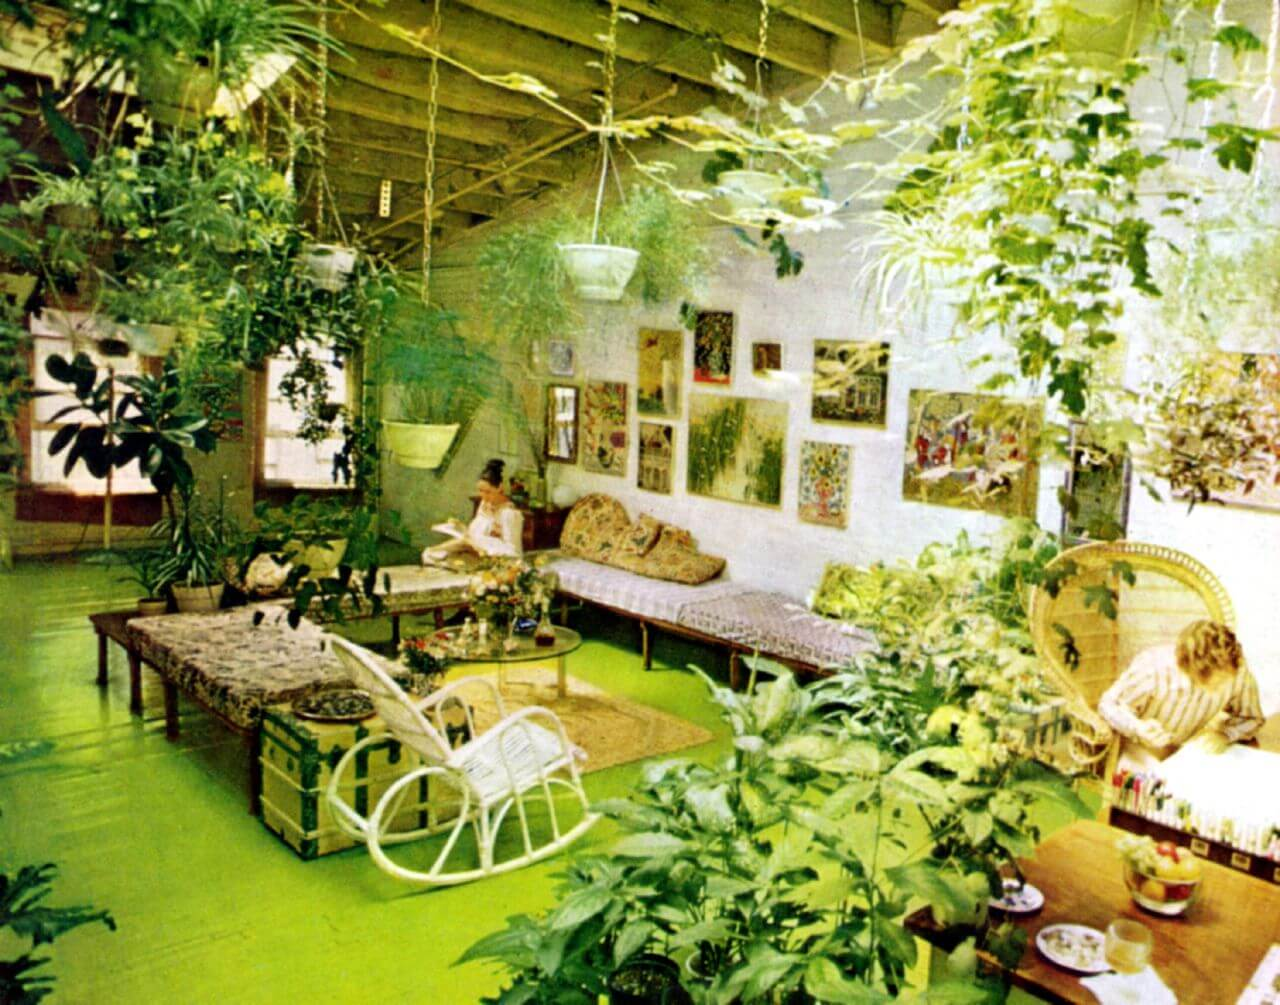 It\'s A Jungle In There: Invasion of the 1970s Houseplants - Go Retro!